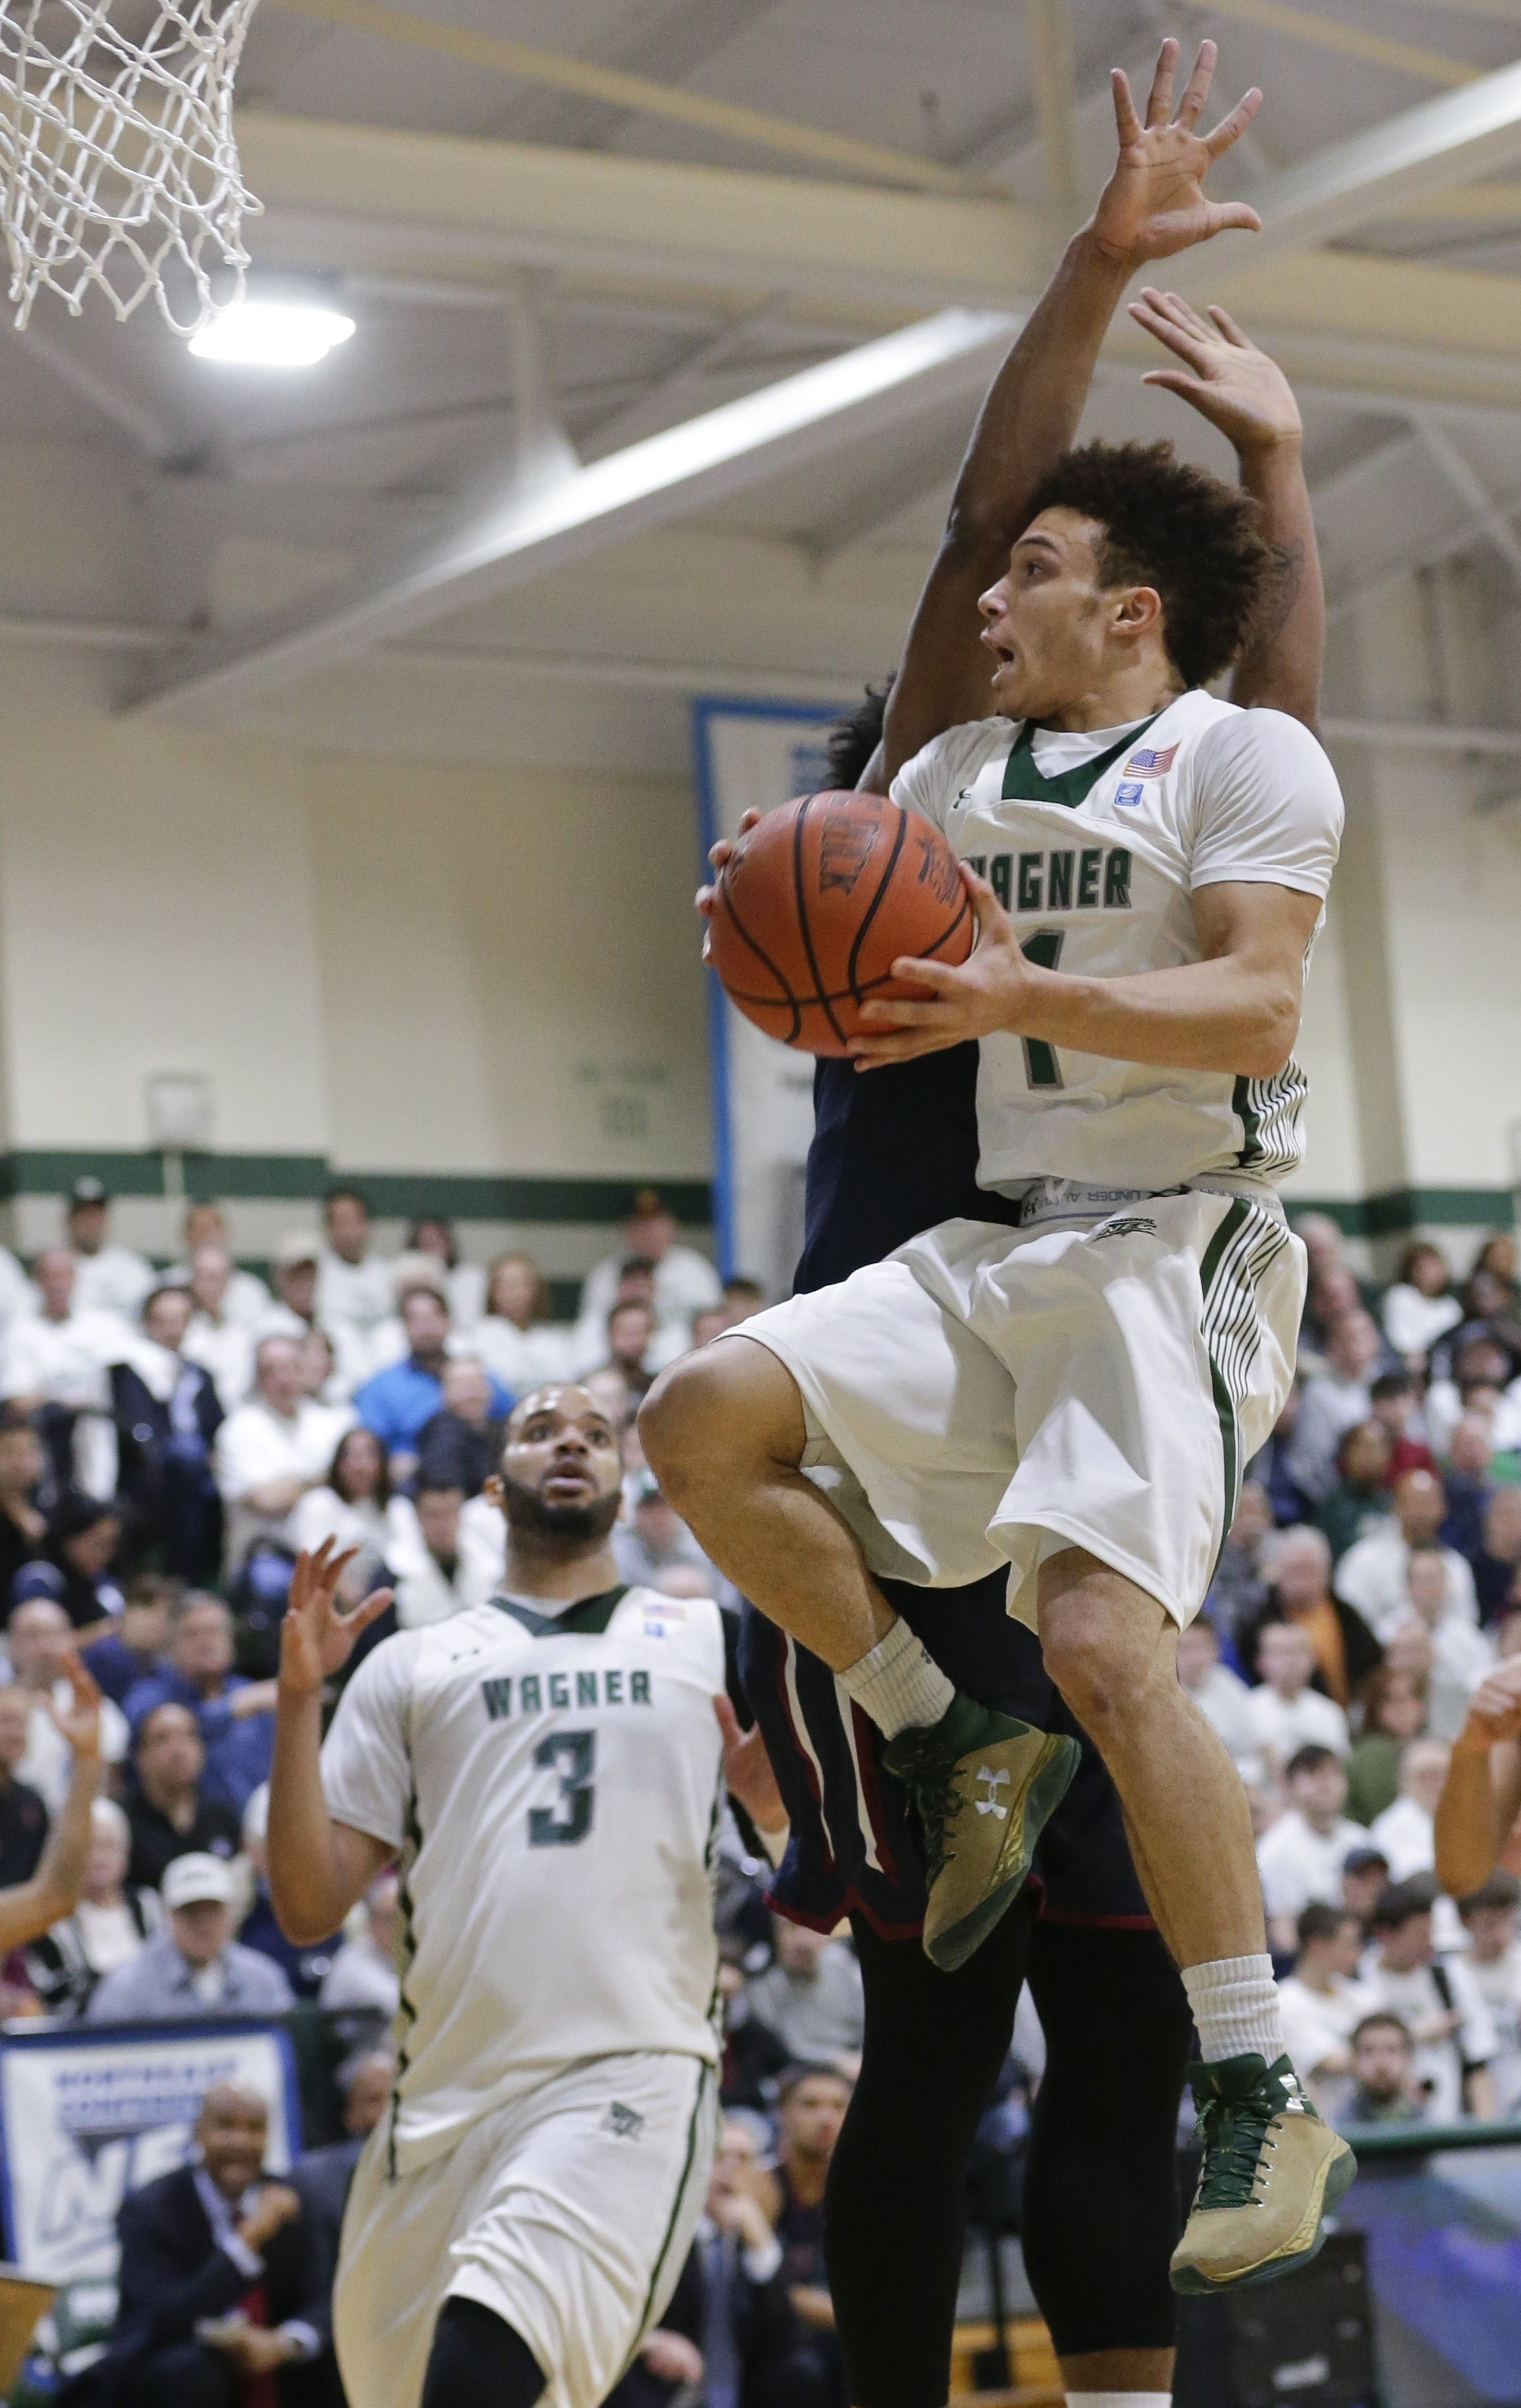 Wagner's Aaren Edmead (1) drives past Fairleigh Dickinson's Mike Holloway during the first half of an NCAA college basketball game in the championship of the Northeast Conference tournament, Tuesday, March 8, 2016, in New York. (AP Photo/Frank Franklin II